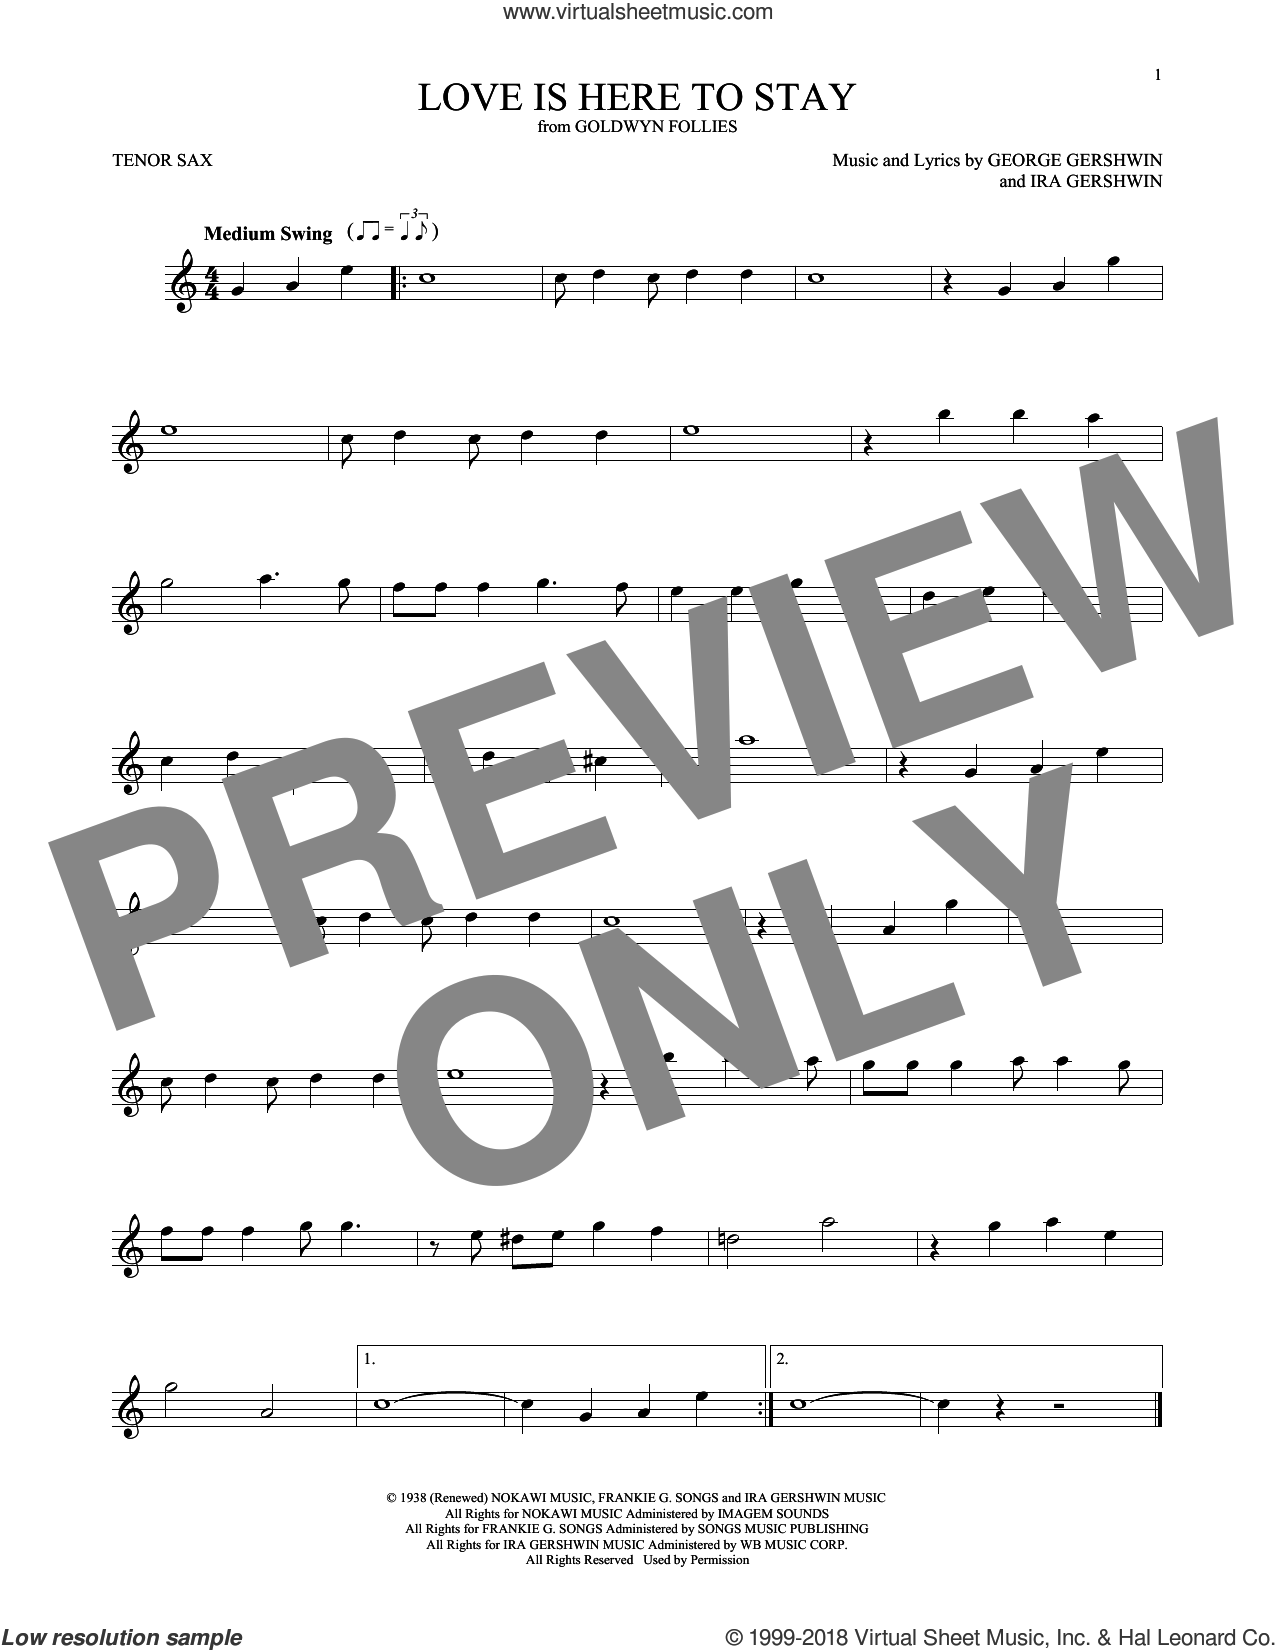 Love Is Here To Stay sheet music for tenor saxophone solo by George Gershwin and Ira Gershwin. Score Image Preview.